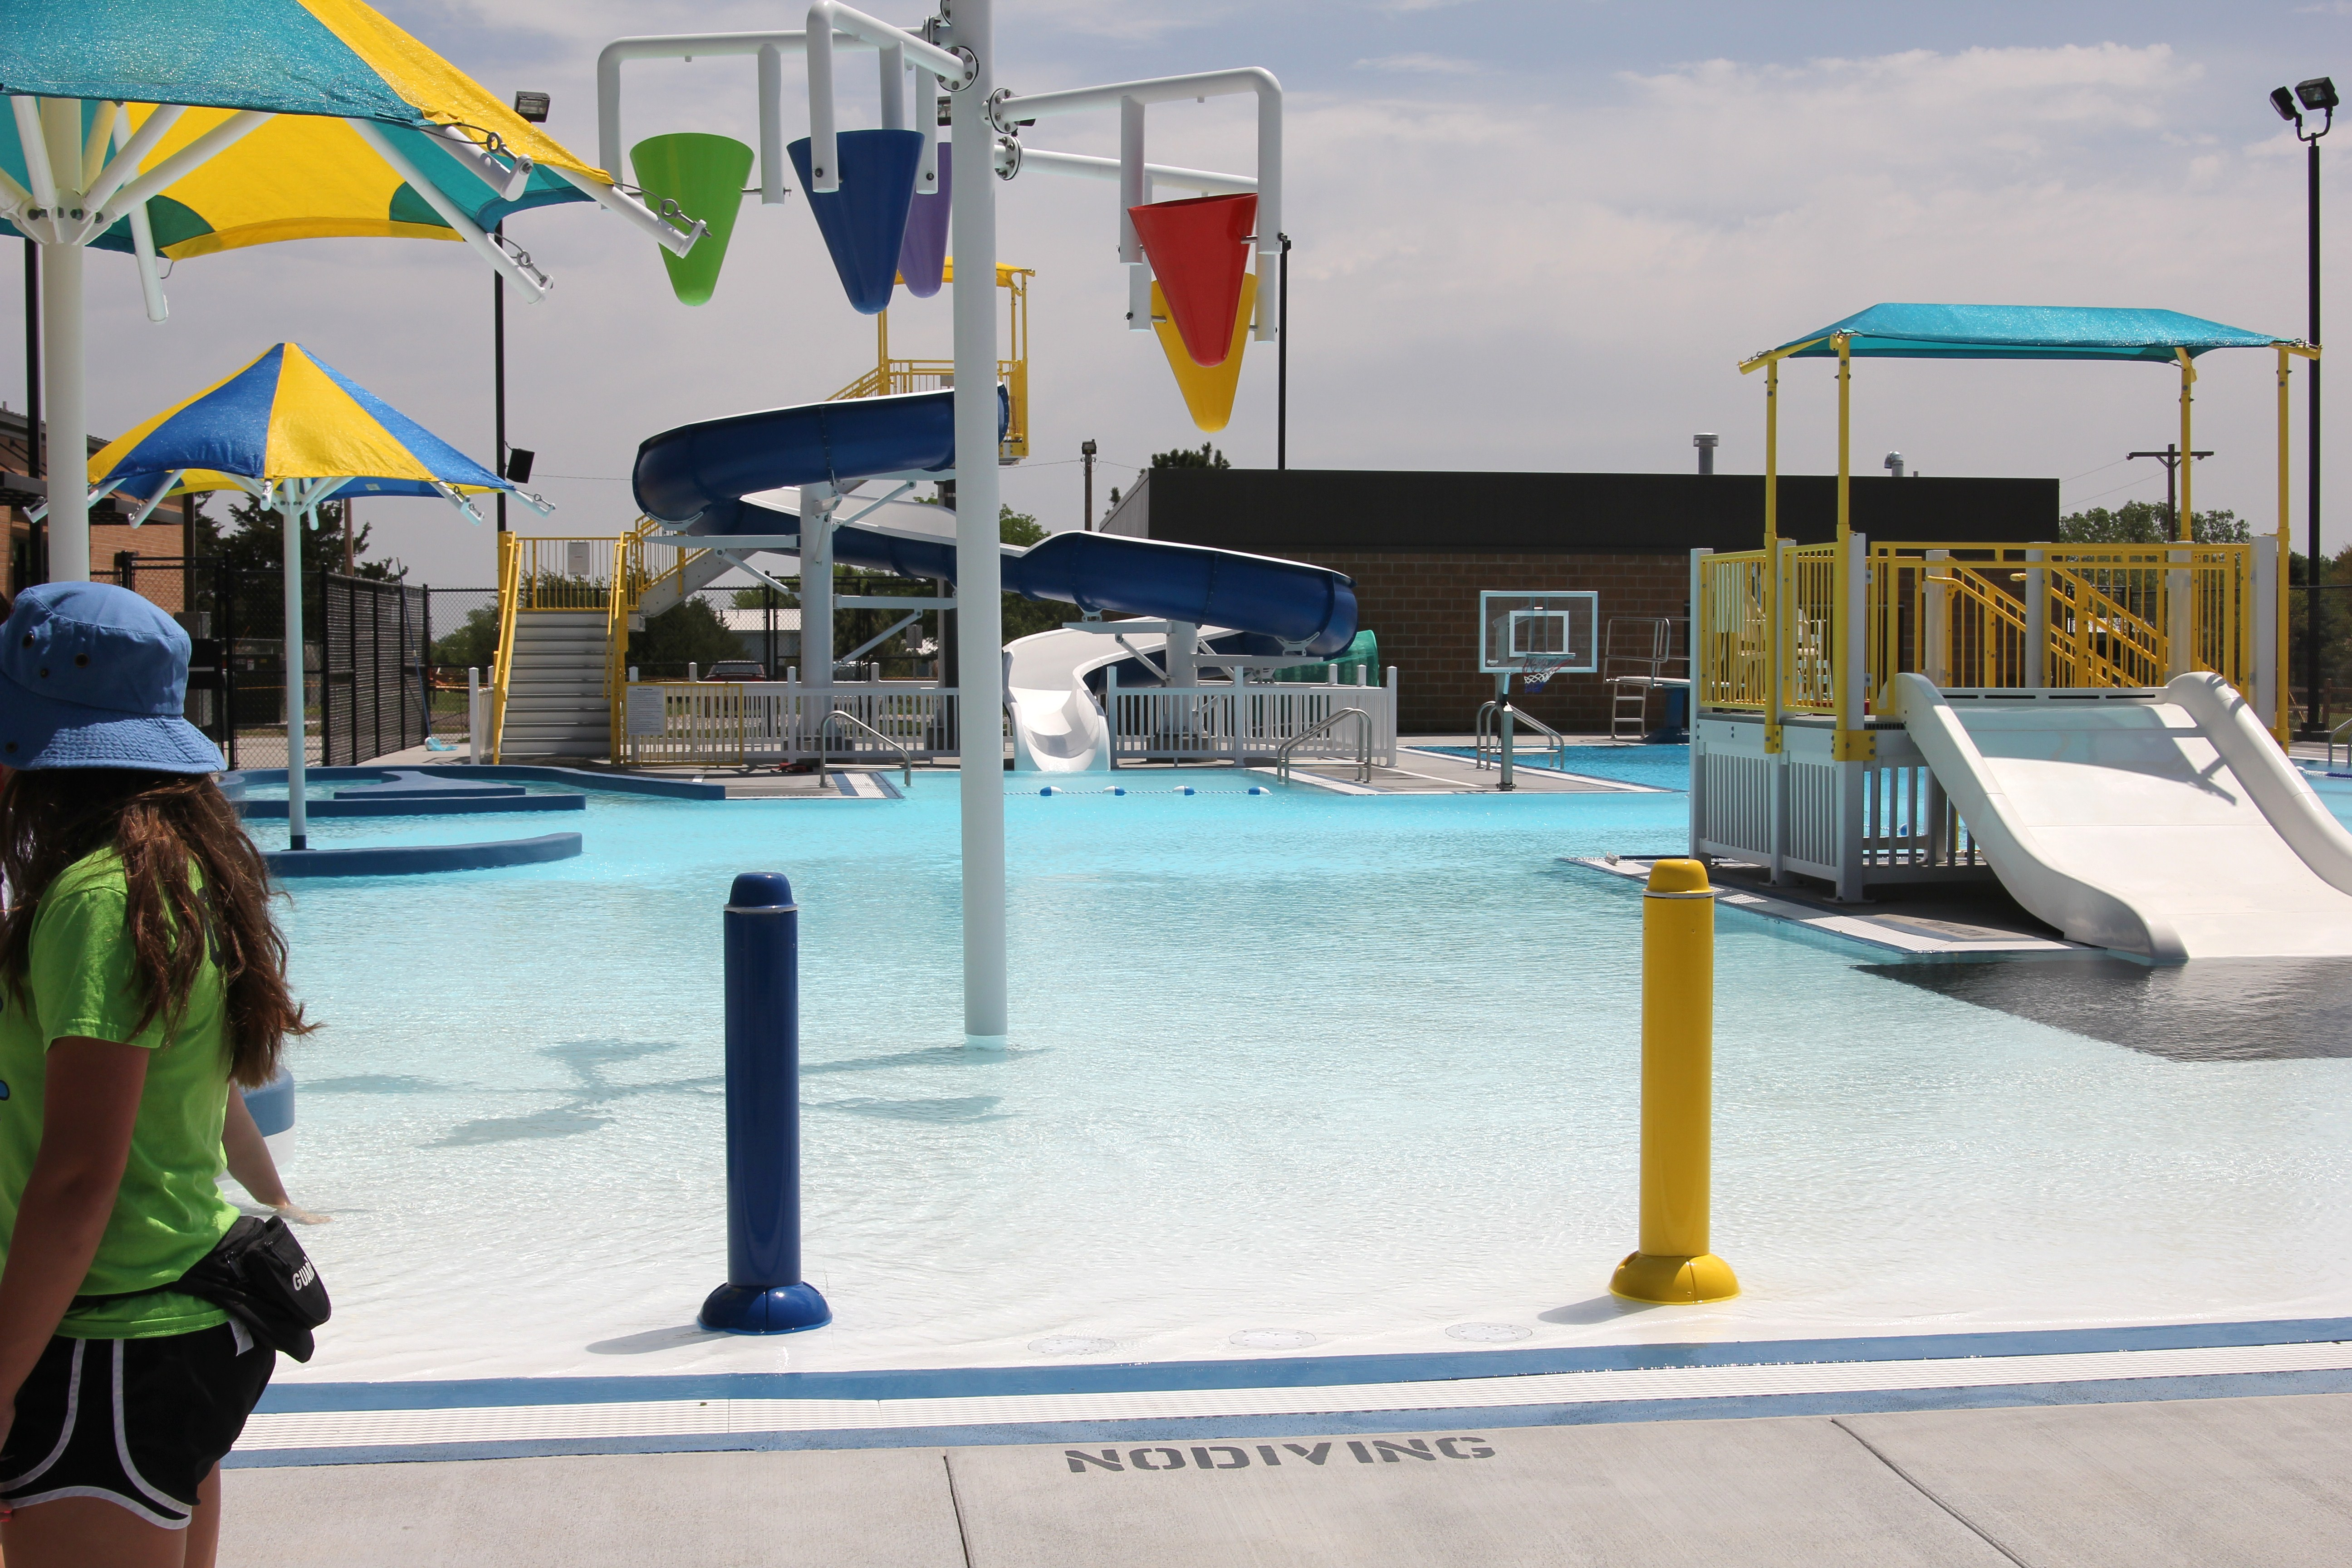 The outdoor pool at the Aquatic Center